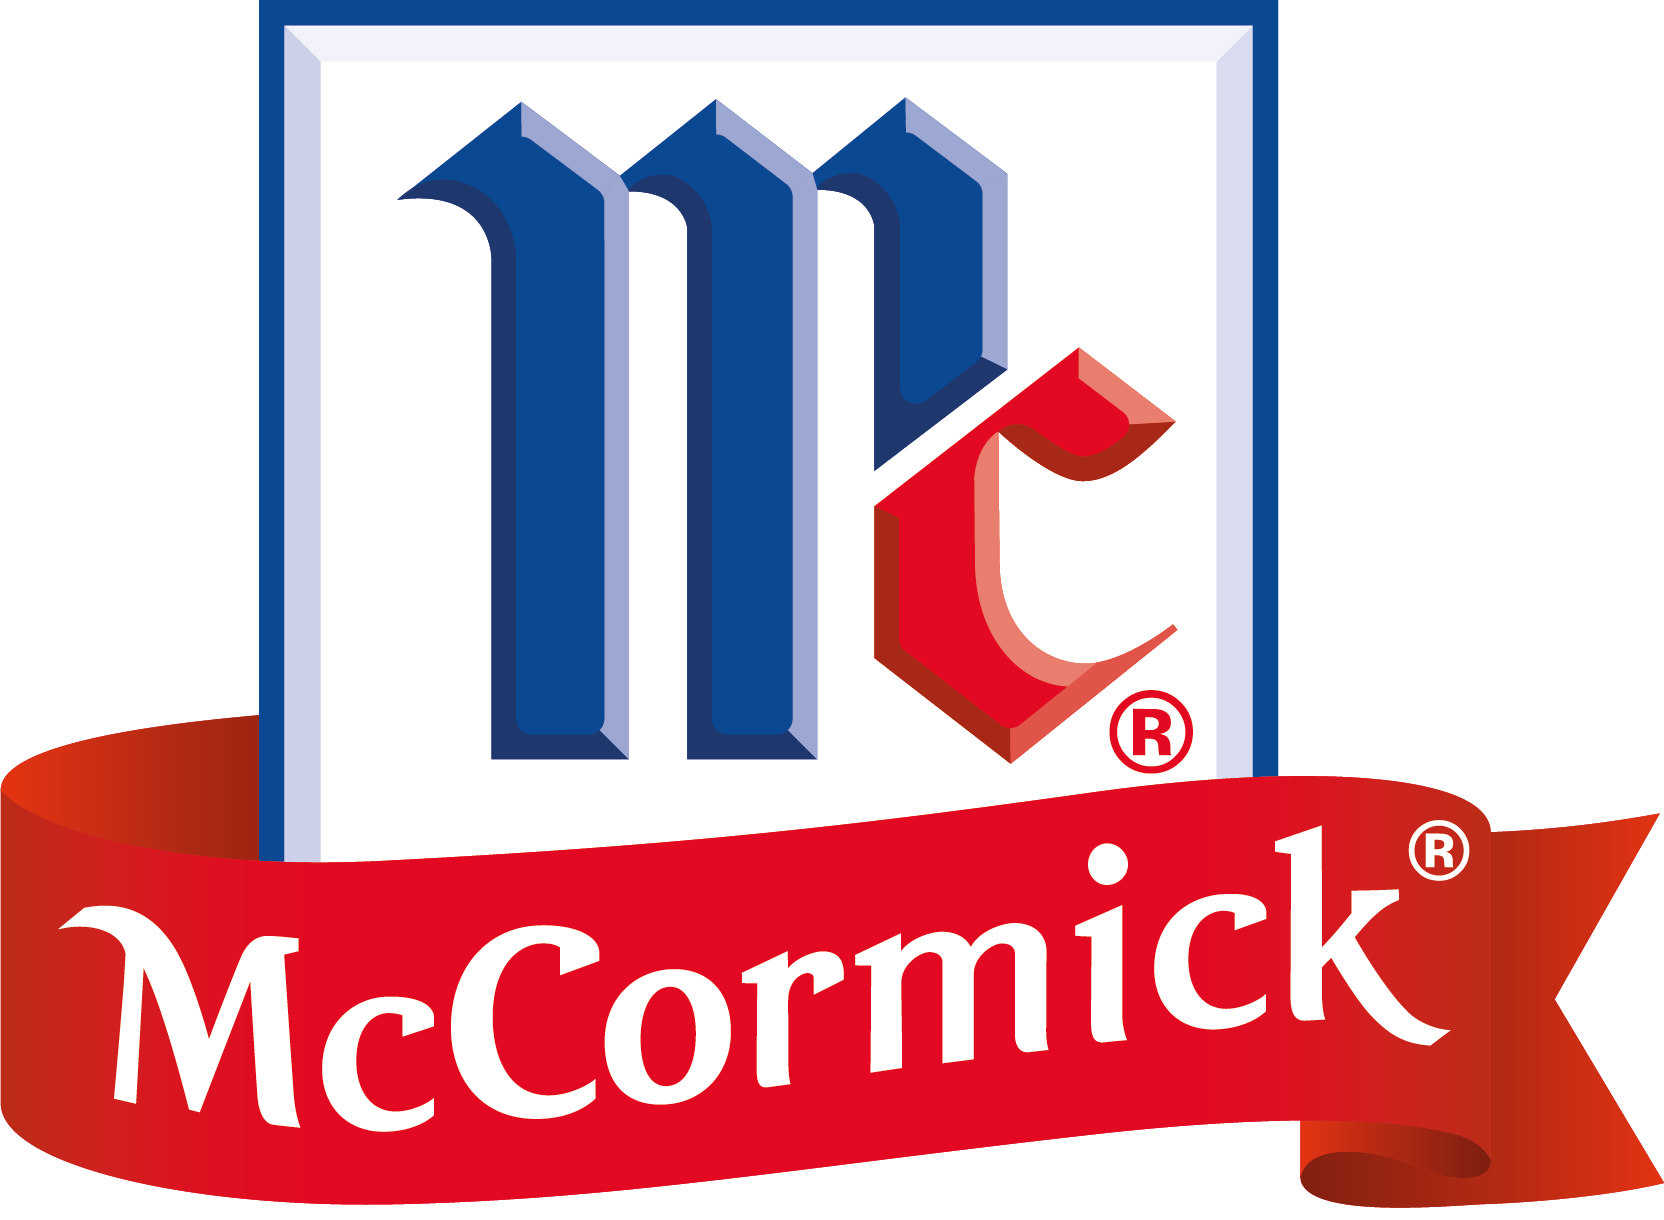 C:\Users\clayt\AppData\Local\Microsoft\Windows\INetCacheContent.Word\McCormick.png